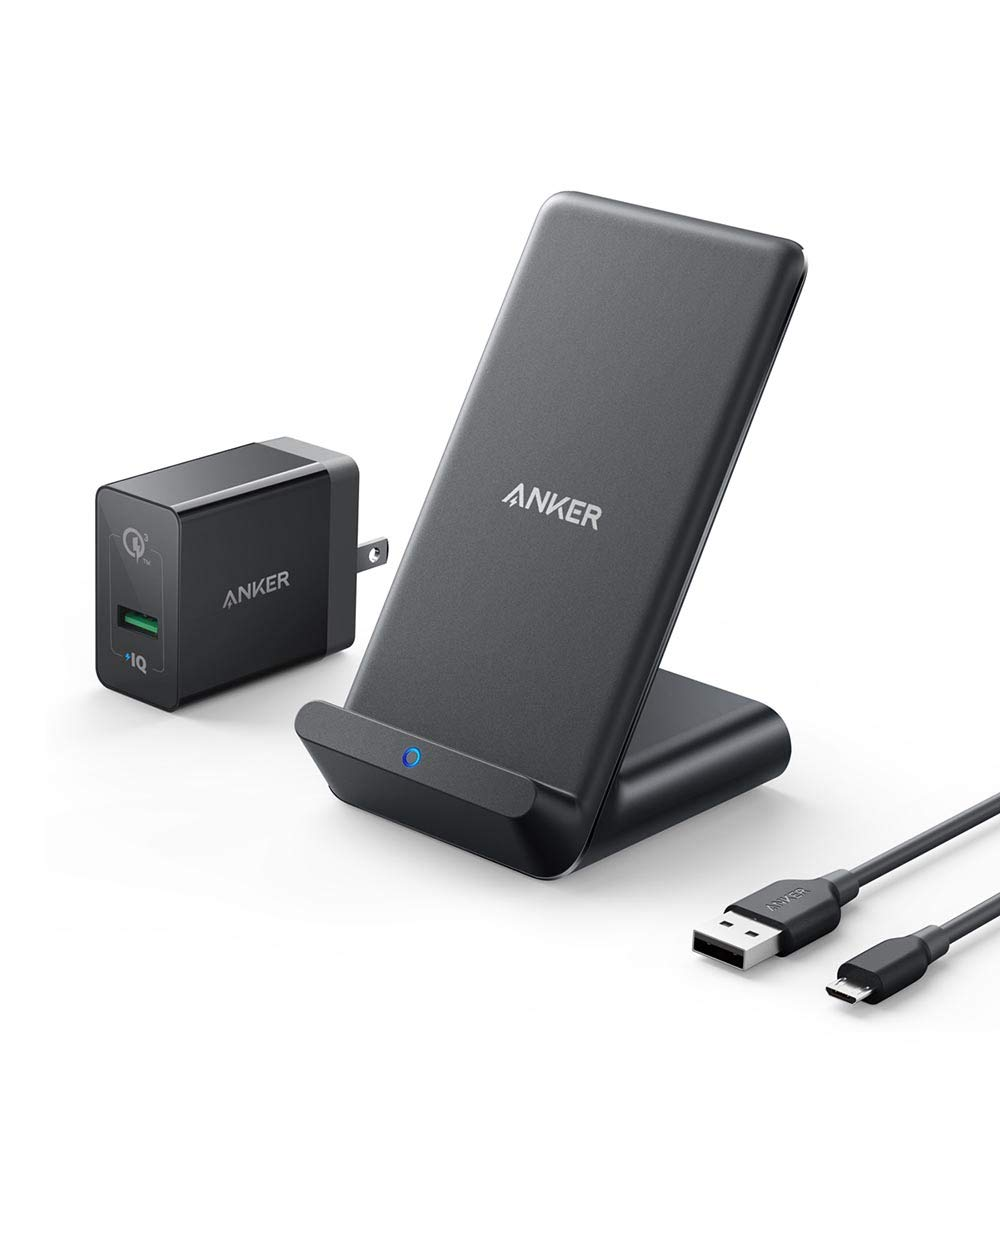 Anker PowerWave 7.5 Fast Wireless Charging Stand with Internal Cooling Fan, Qi-Certified, 7.5W Compatible iPhone XR/XS Max/XS/X/8/8 Plus, 10W Charges Galaxy S9/S9+/S8, LG G7(with Quick Charge Adapter) by Anker